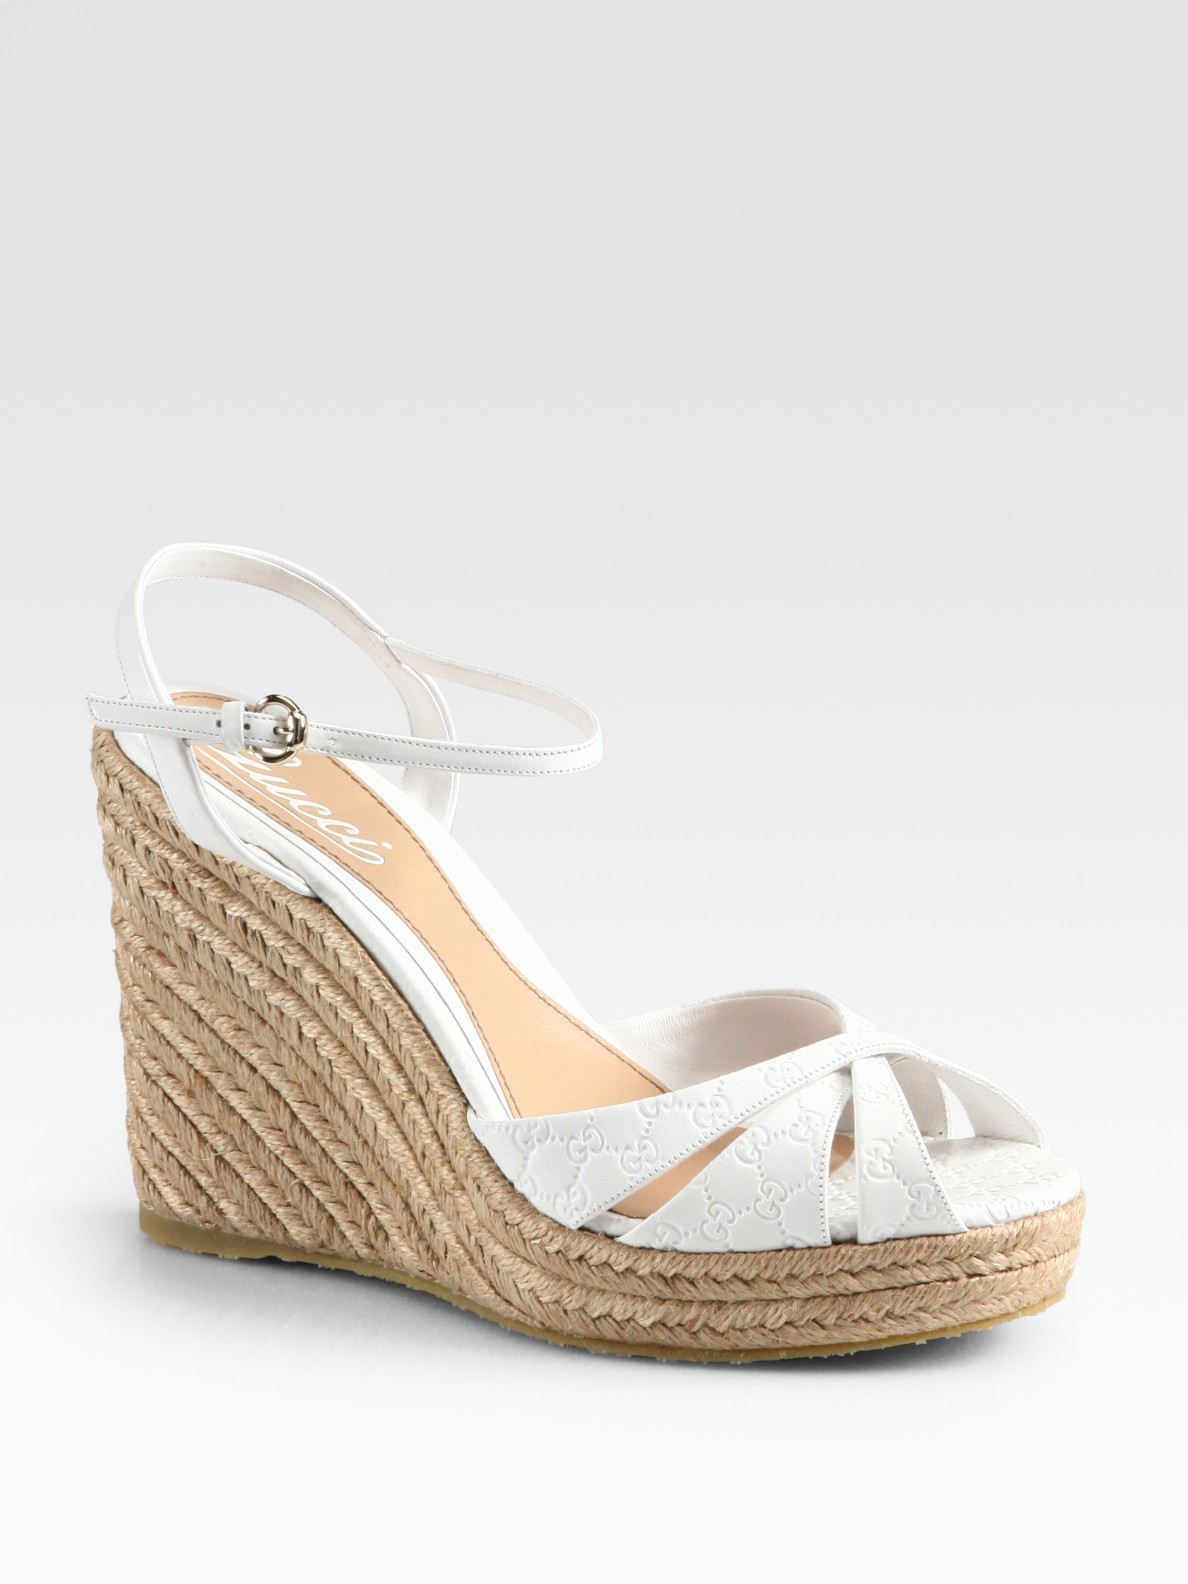 9078d43f4204 Lyst - Gucci Penelope Gg Leather Espadrille Wedges in White